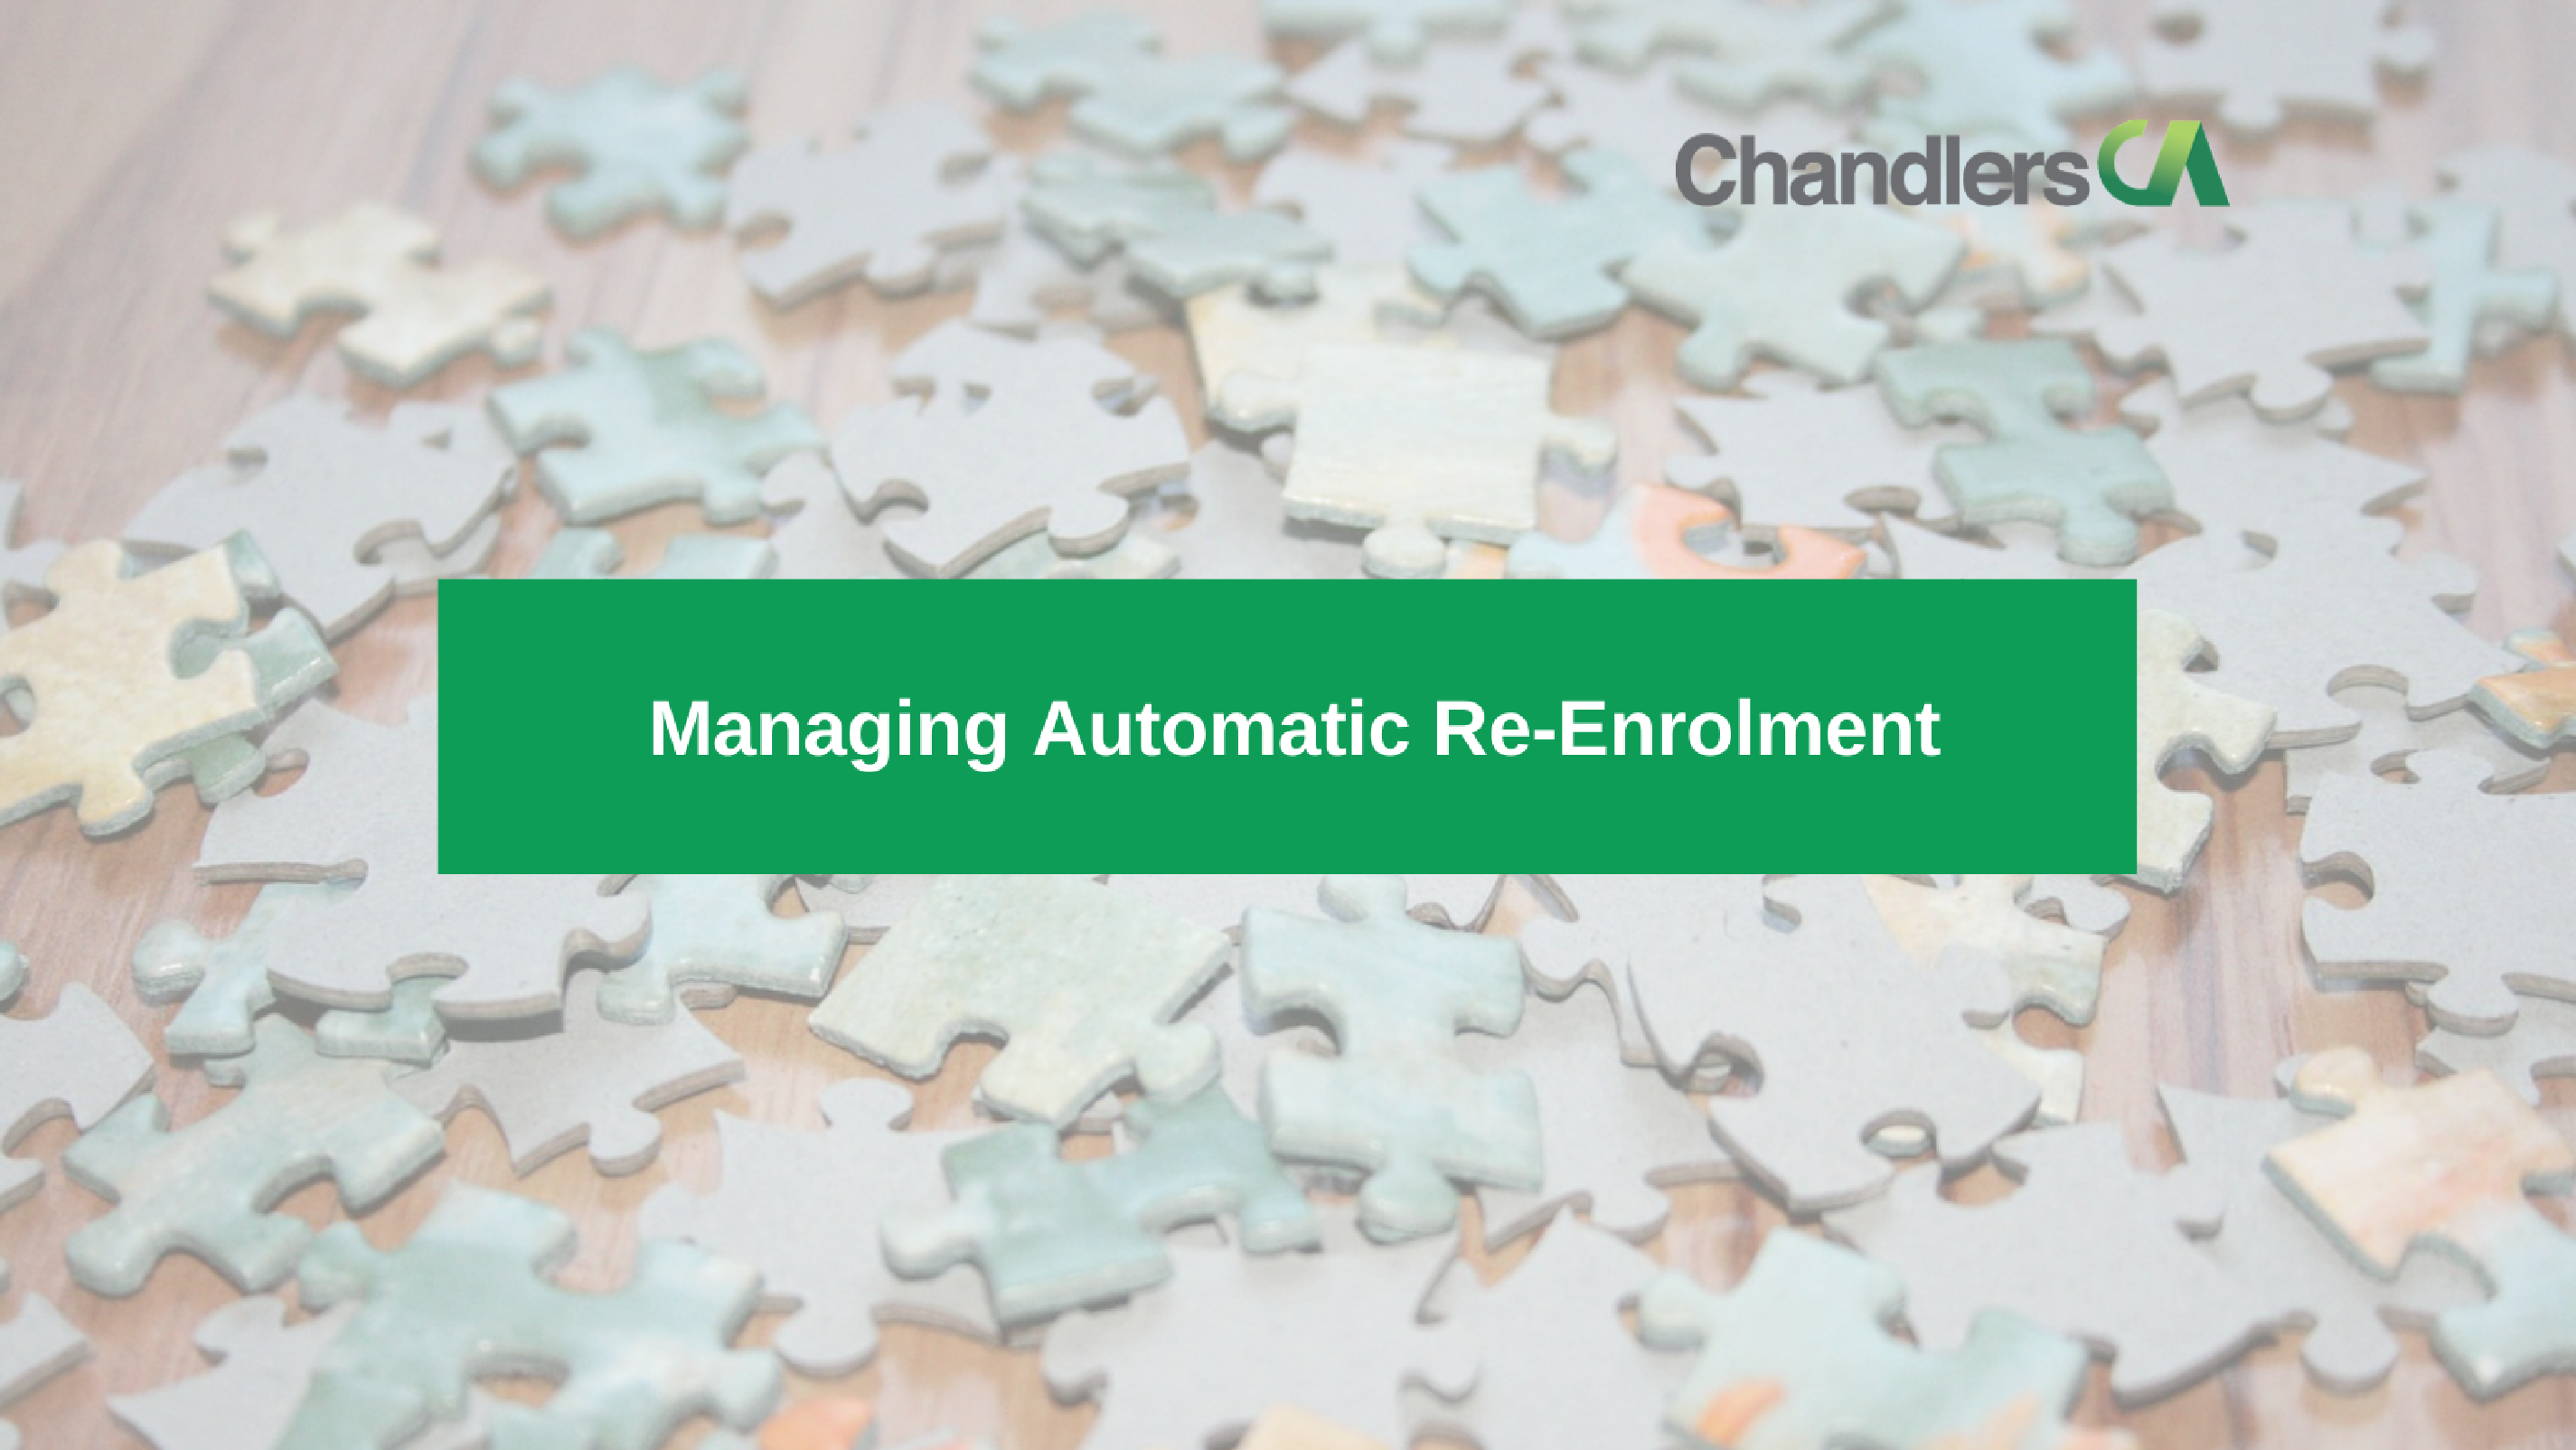 Guide to Managing Automatic Re-Enrolment